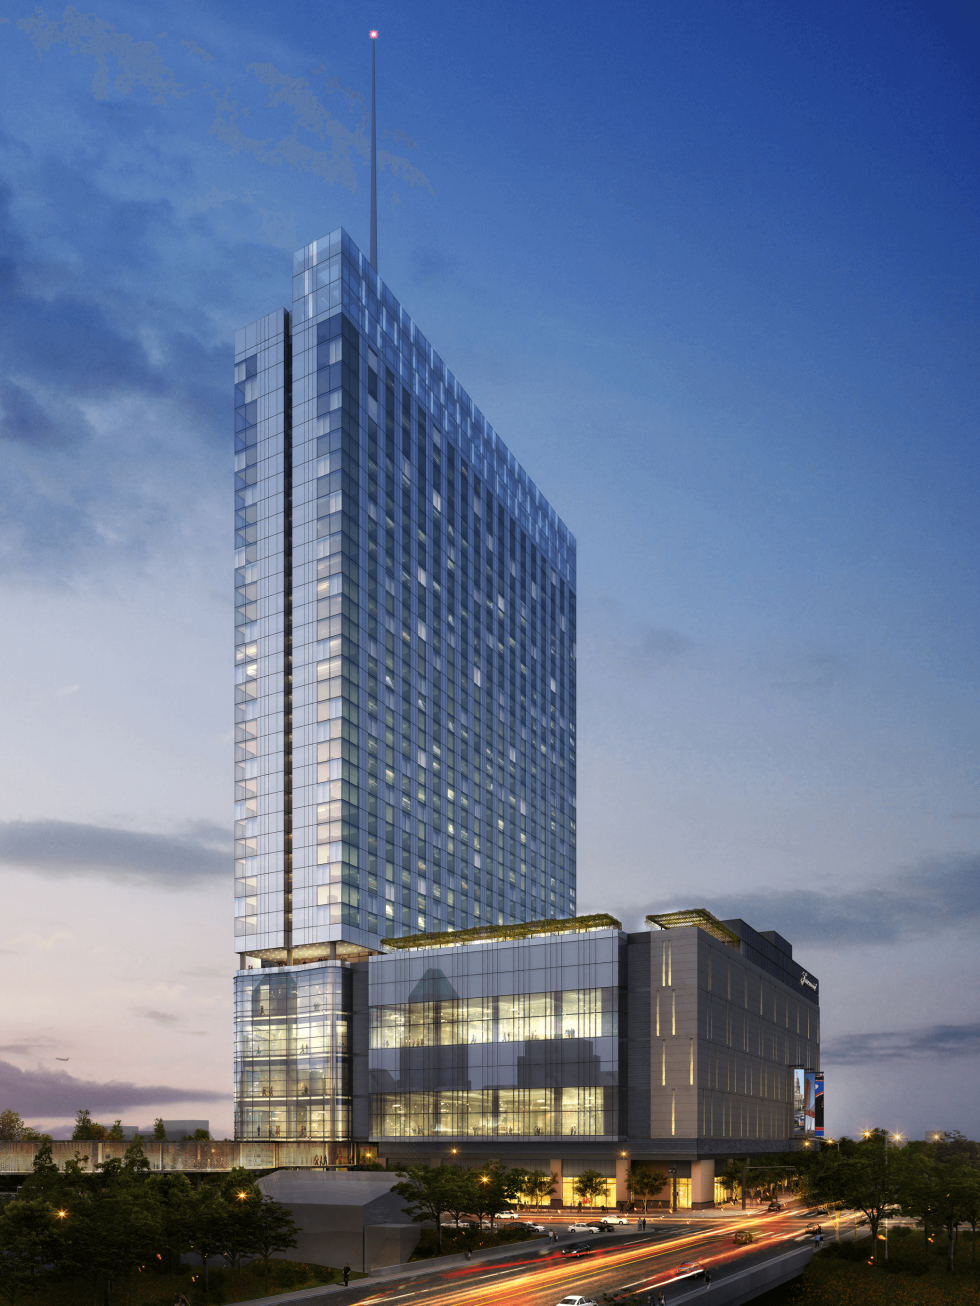 The Fairmont Austin Hotel Rendering October 2014